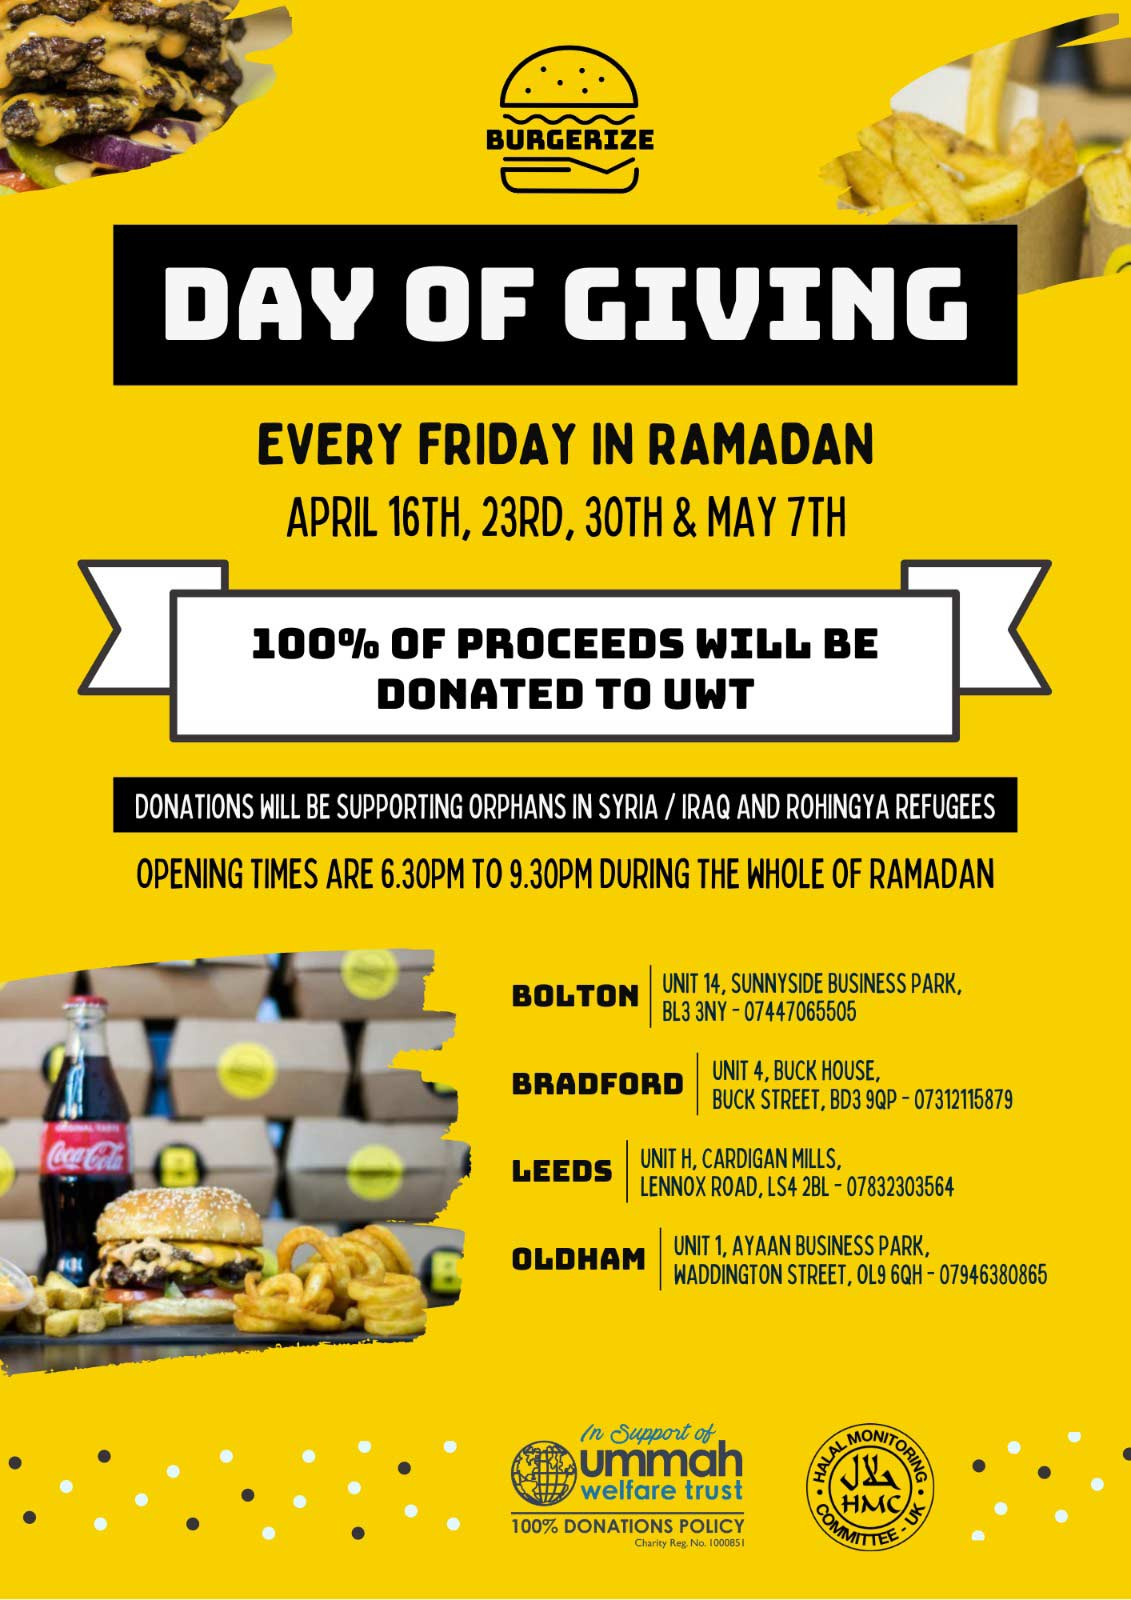 Burgerize Charity Day of Giving Ramadhan